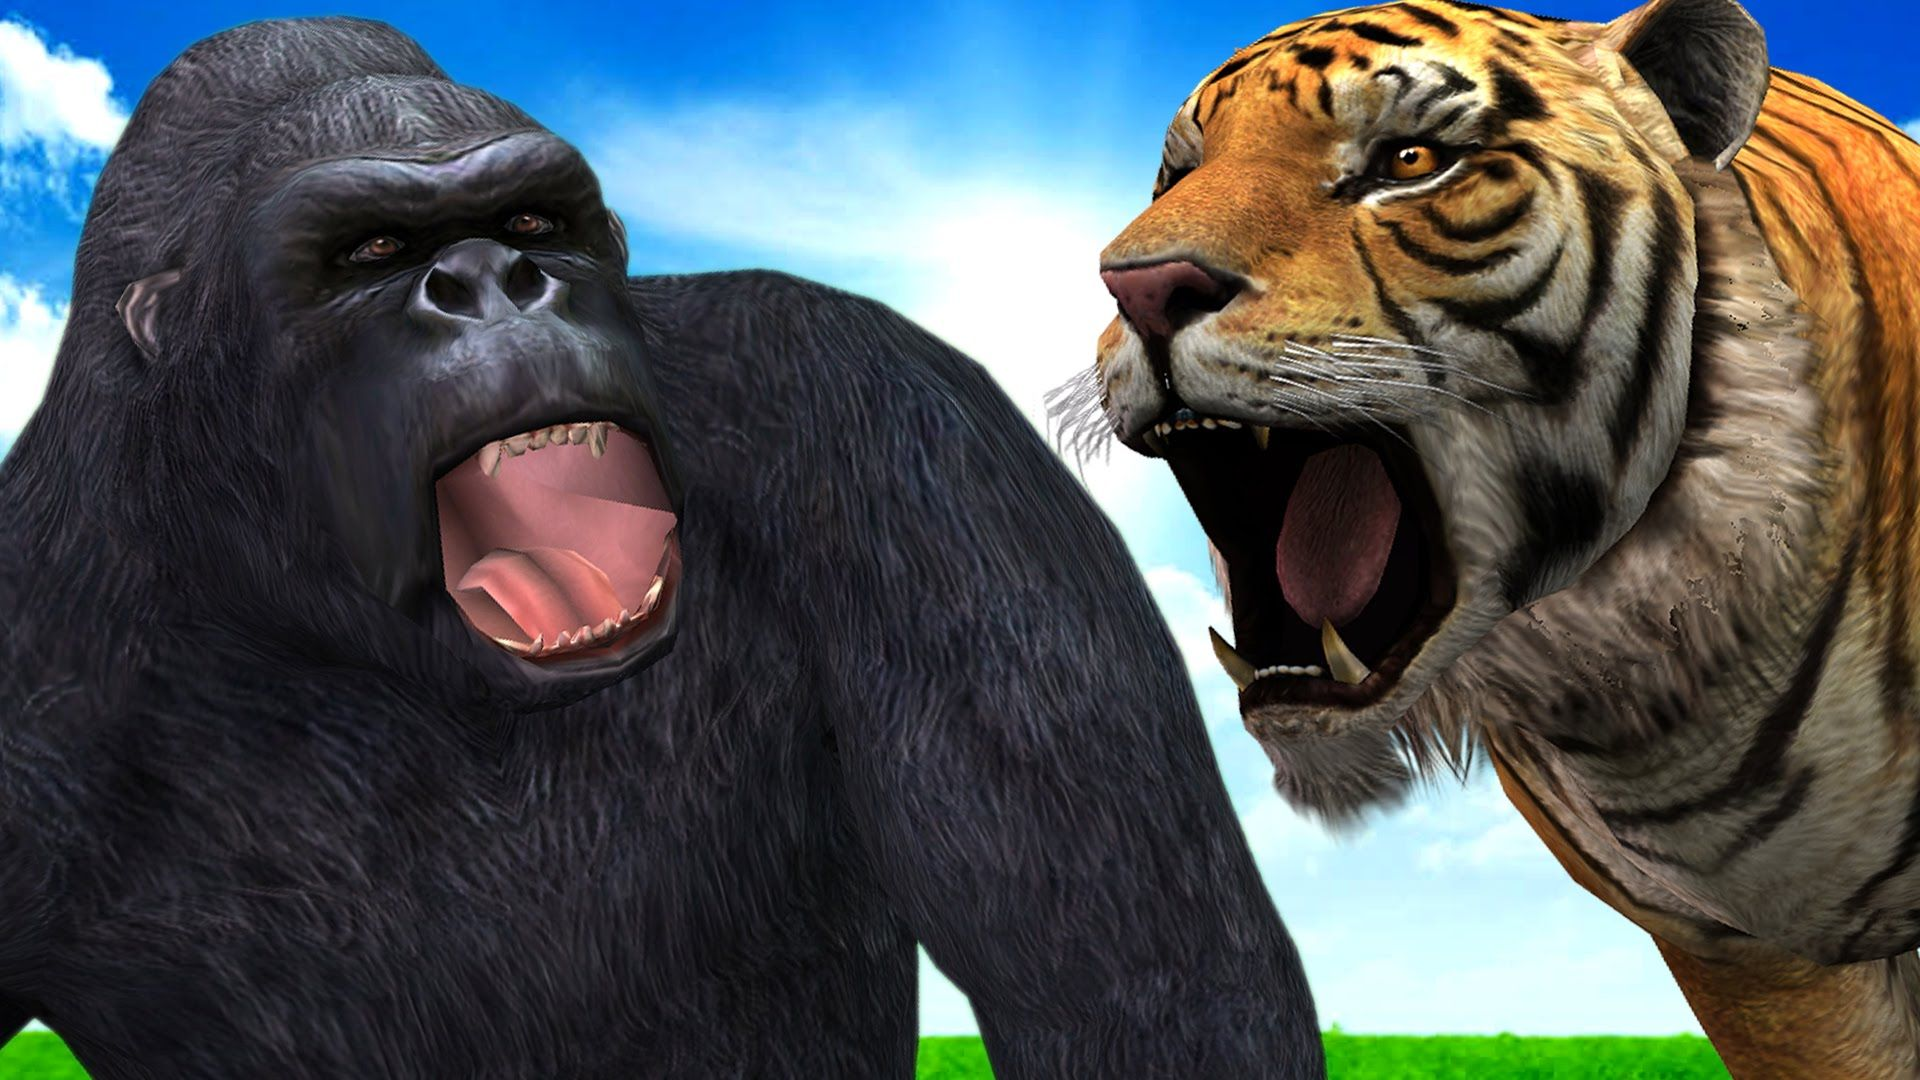 King Kong Gorilla Vs Tiger Wild Animal Fights | Animal Cartoons Finger F...